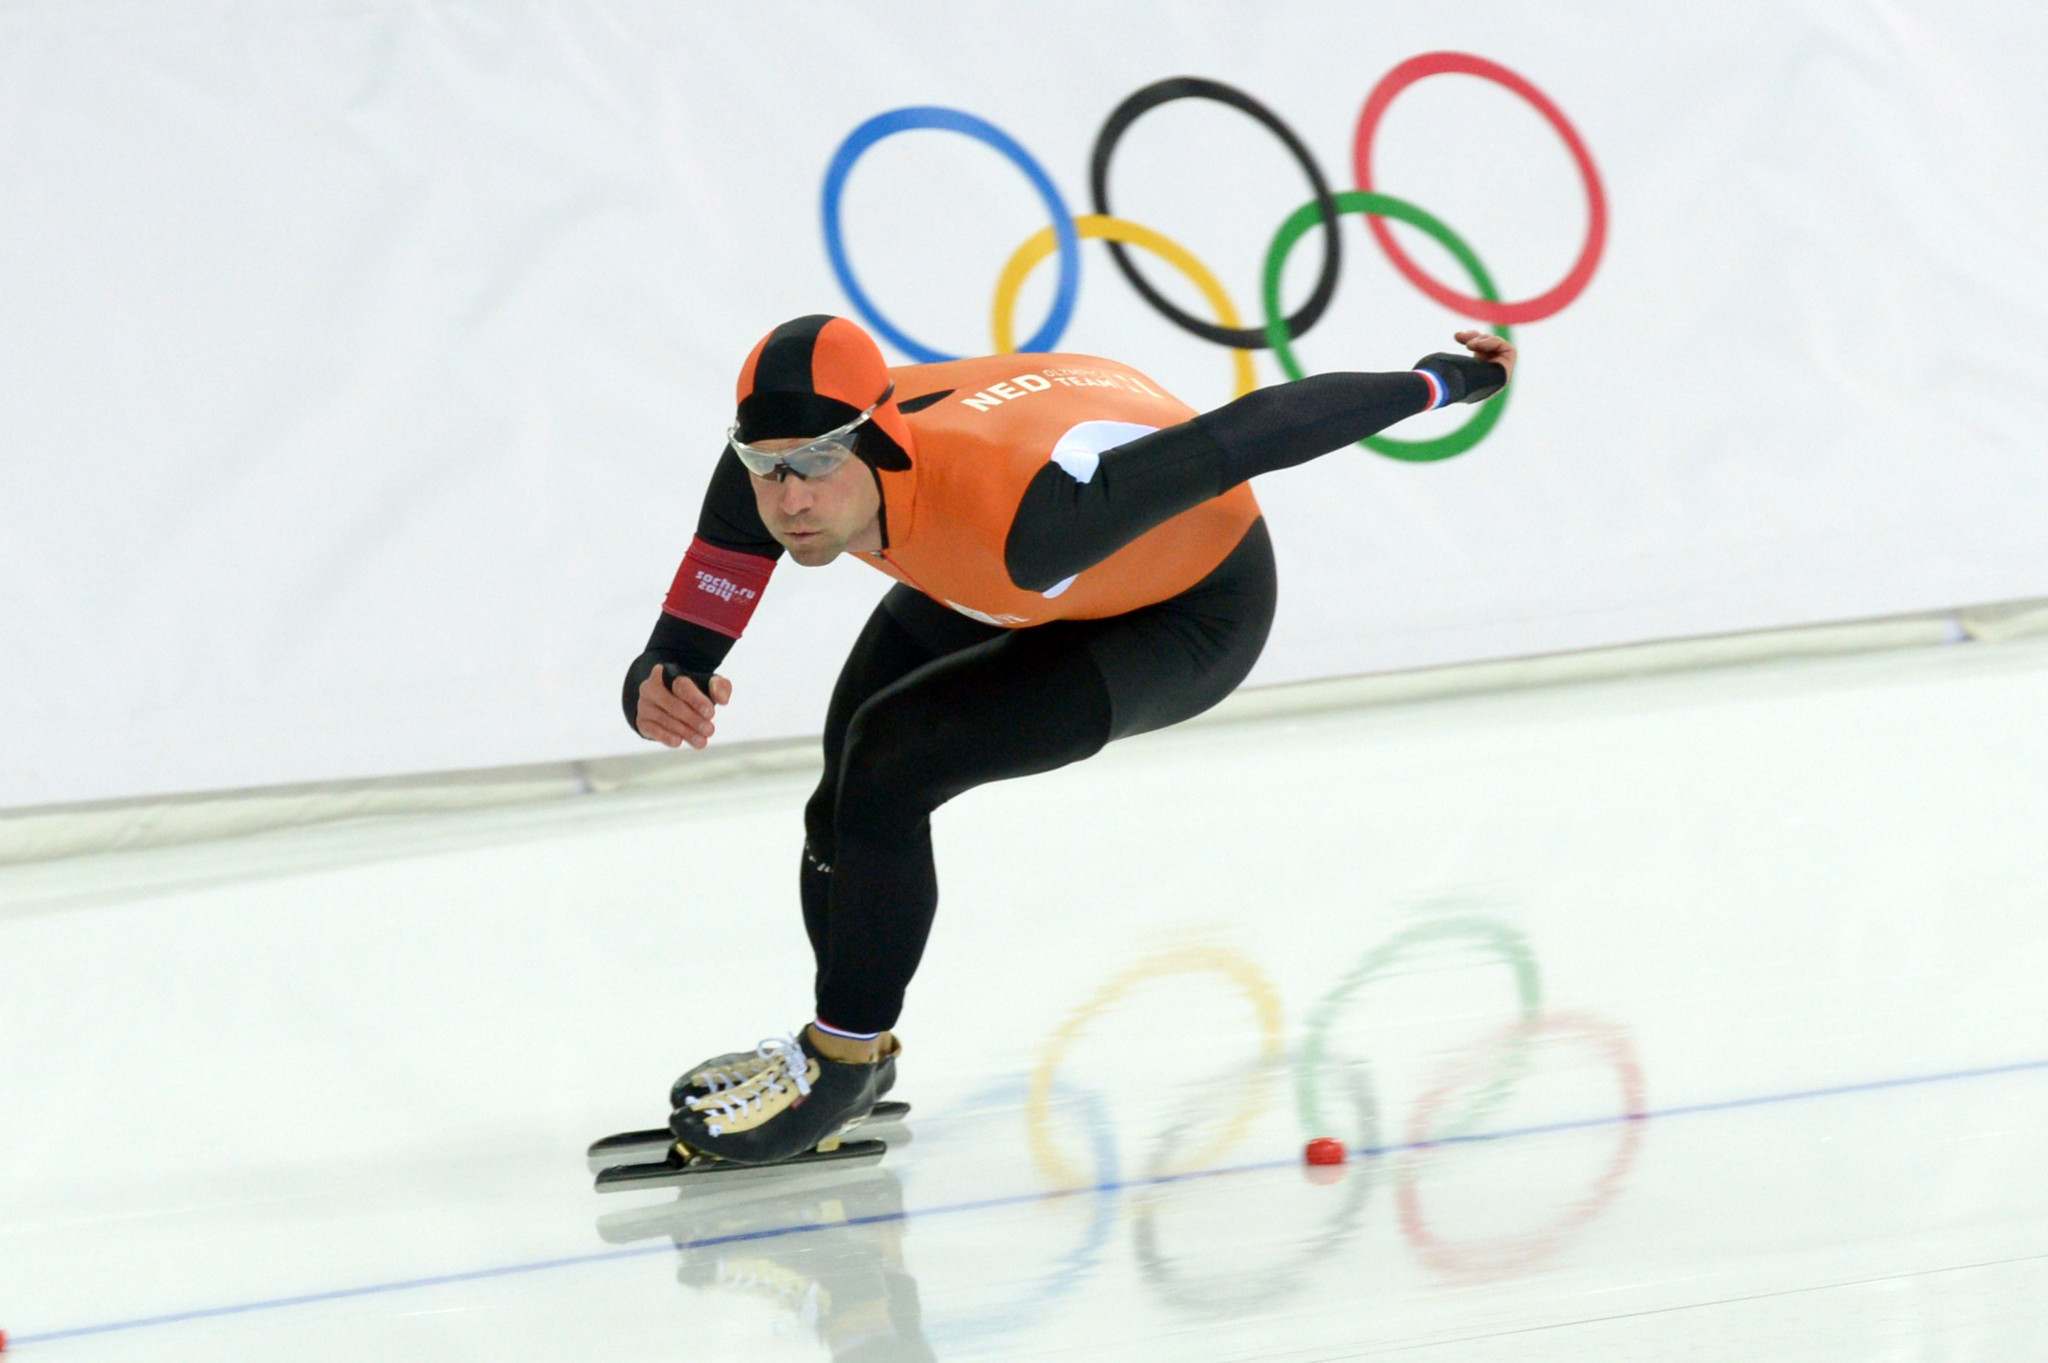 Mark Tuitert, one of the Dutch speed skaters involved in the legal case, pictured racing at Sochi 2014 ©Getty Images